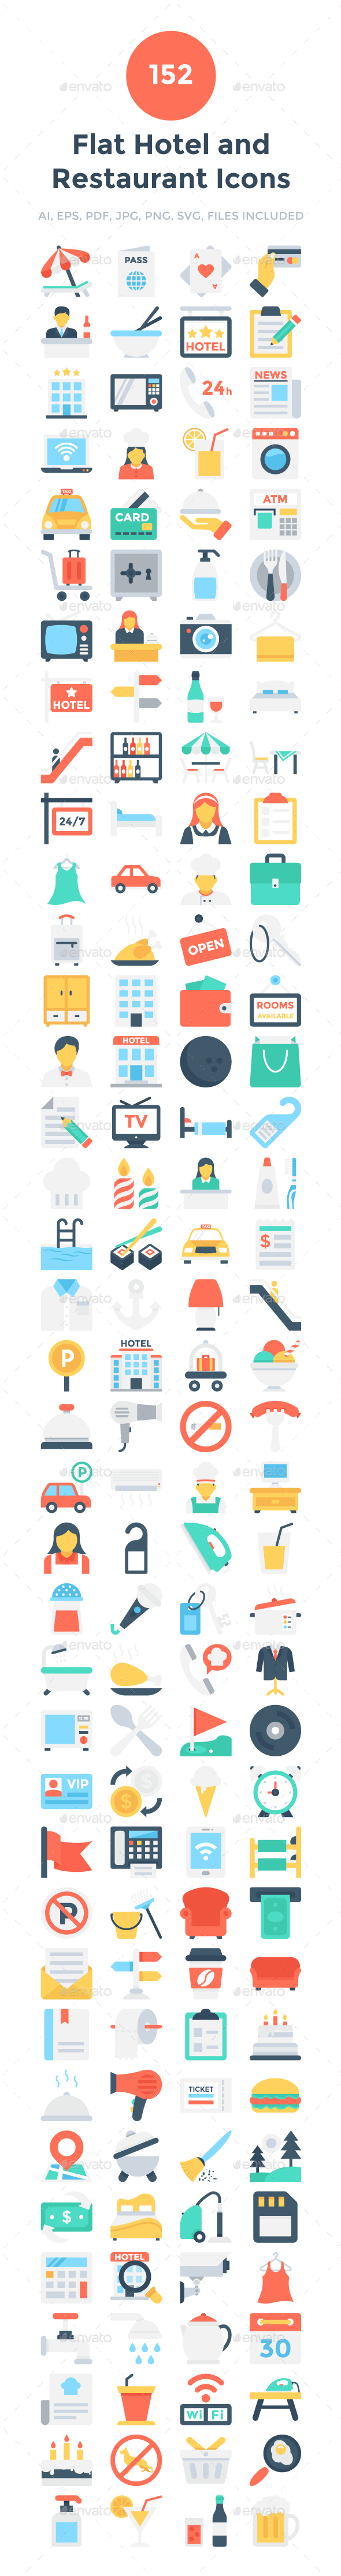 152 Flat Hotel and Restaurant Icons - Icons